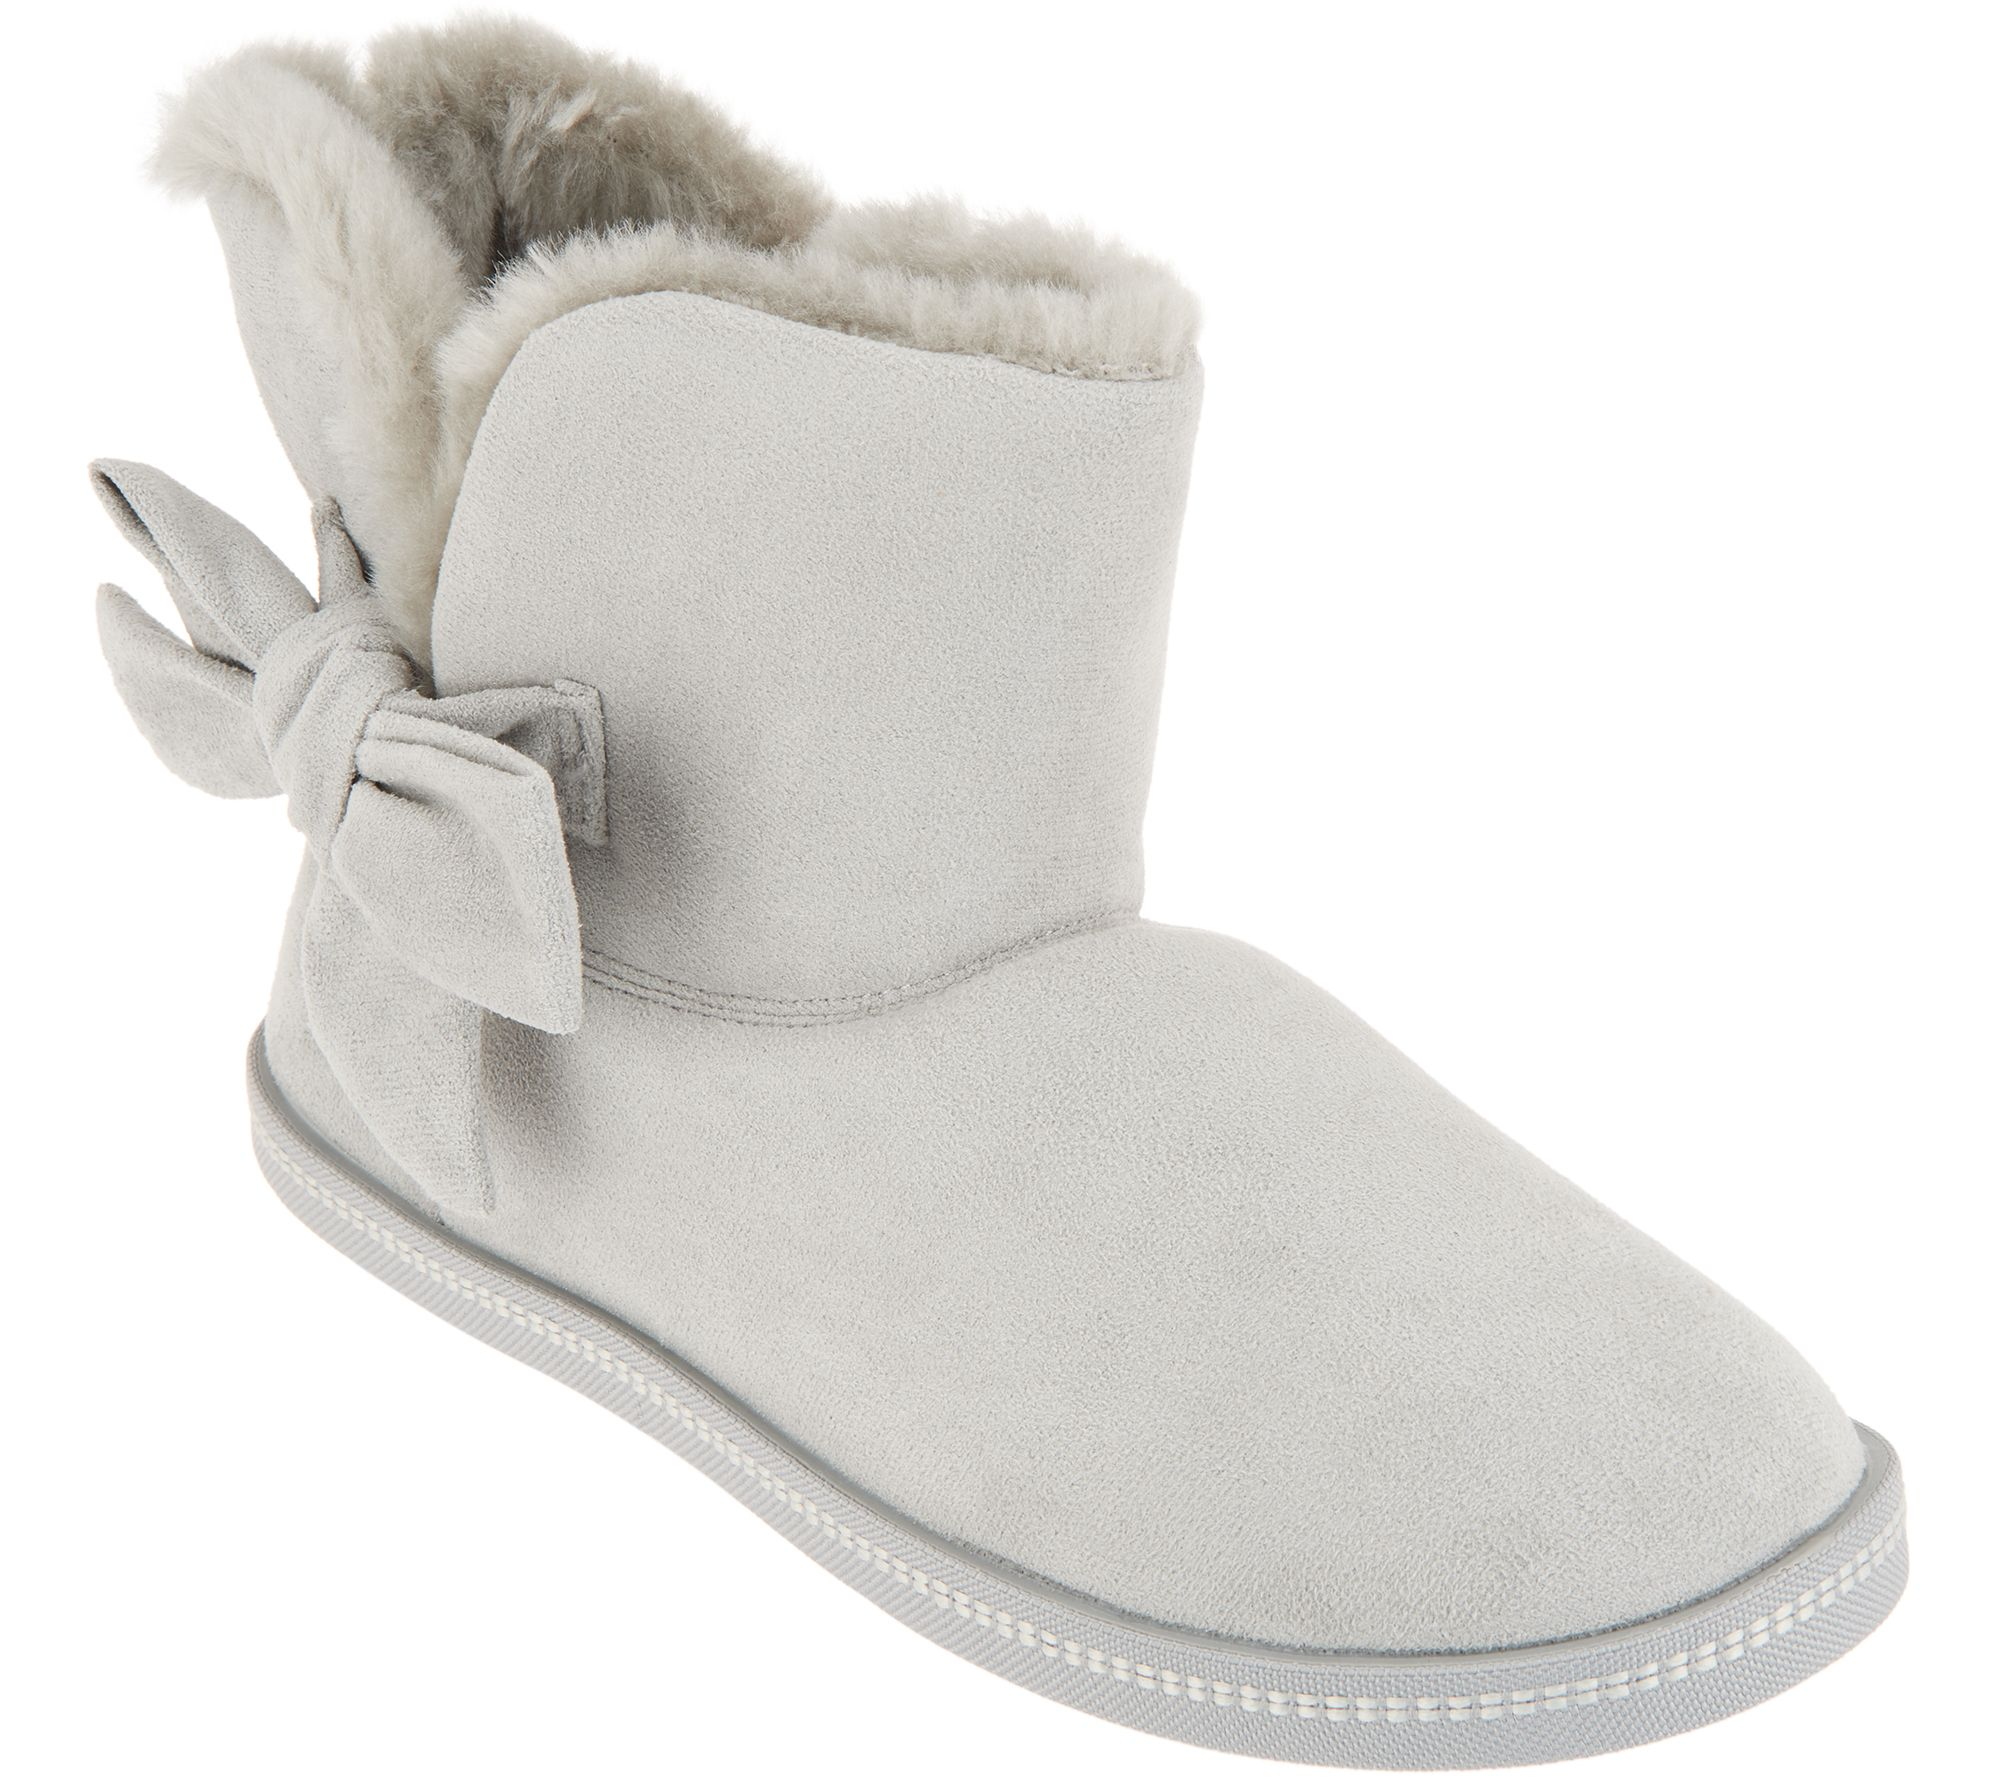 """Gray Boots with Fur Trim /& Buckle Shoes made for 18/"""" American Girl Doll Clothes"""